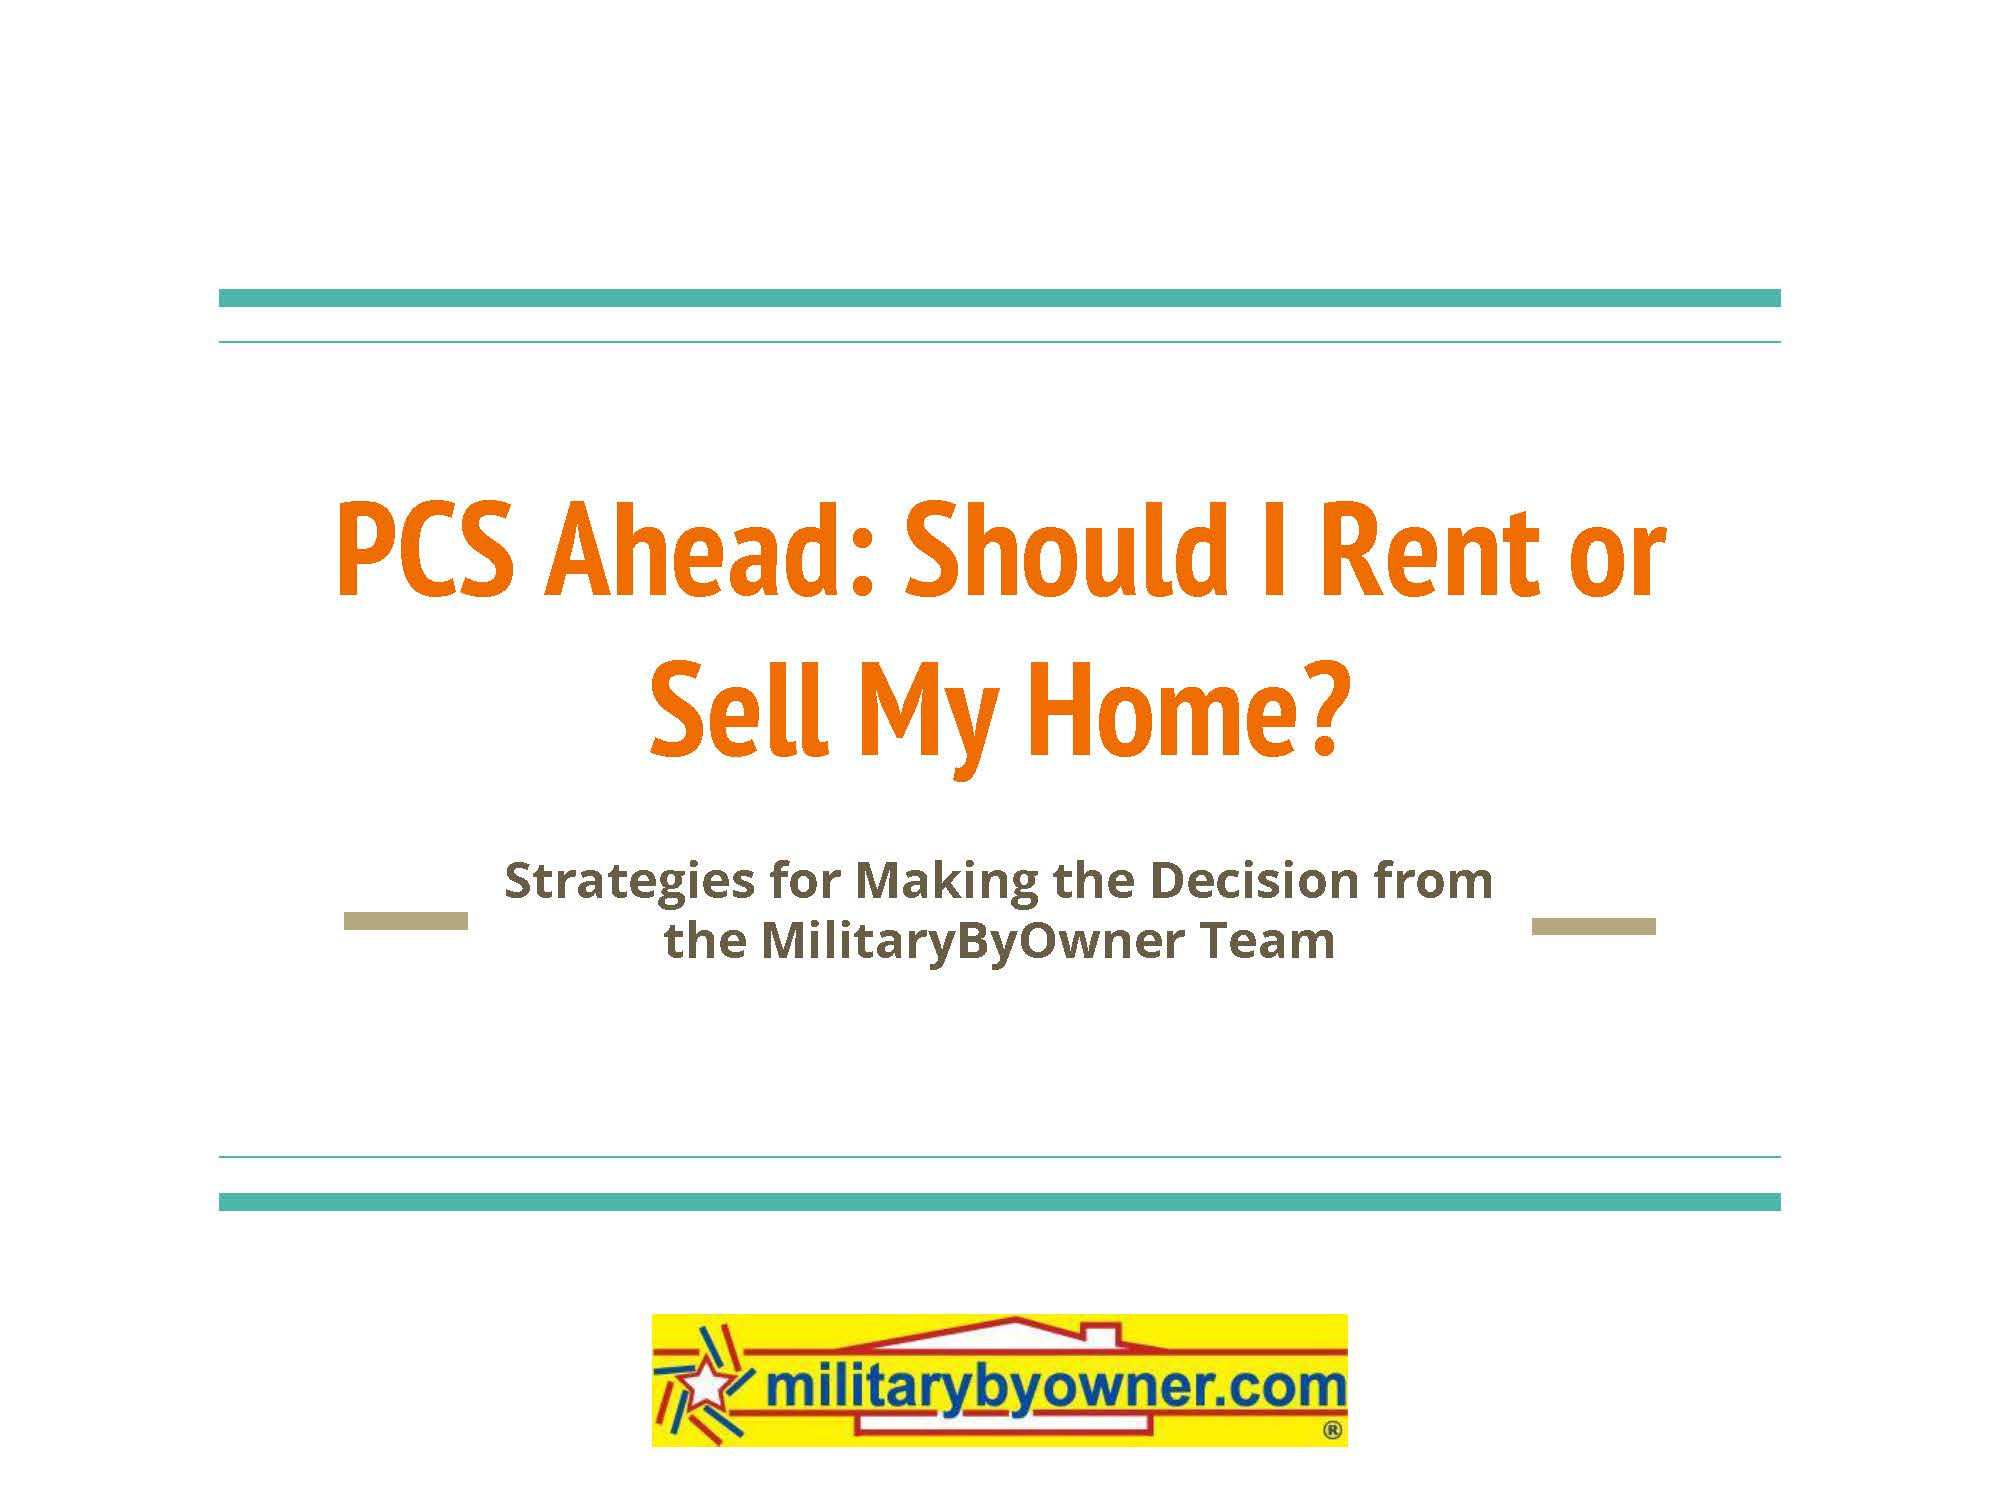 PCS_Ahead_Rent_or_Sell_Ebook_Cover.jpg